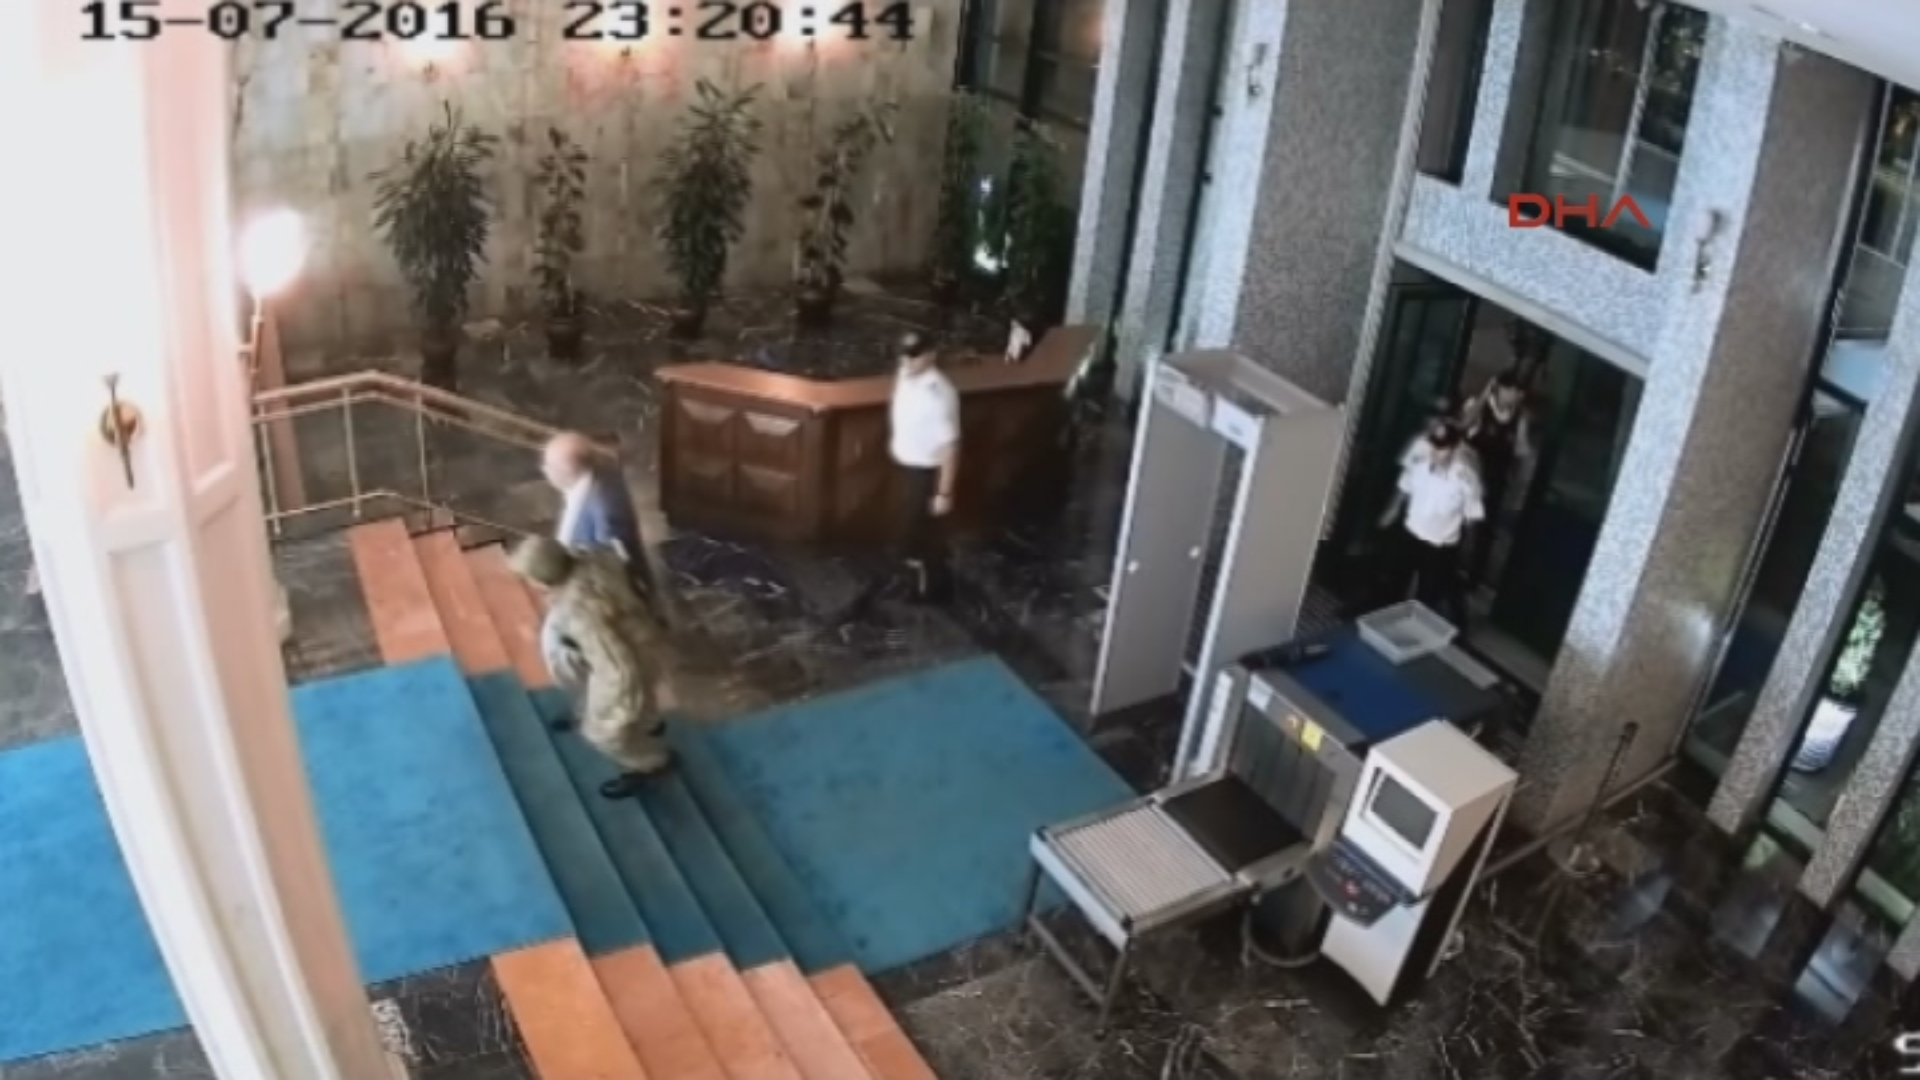 Cameras recorded Tunç and a coup captain entering the municipality's official rooms.